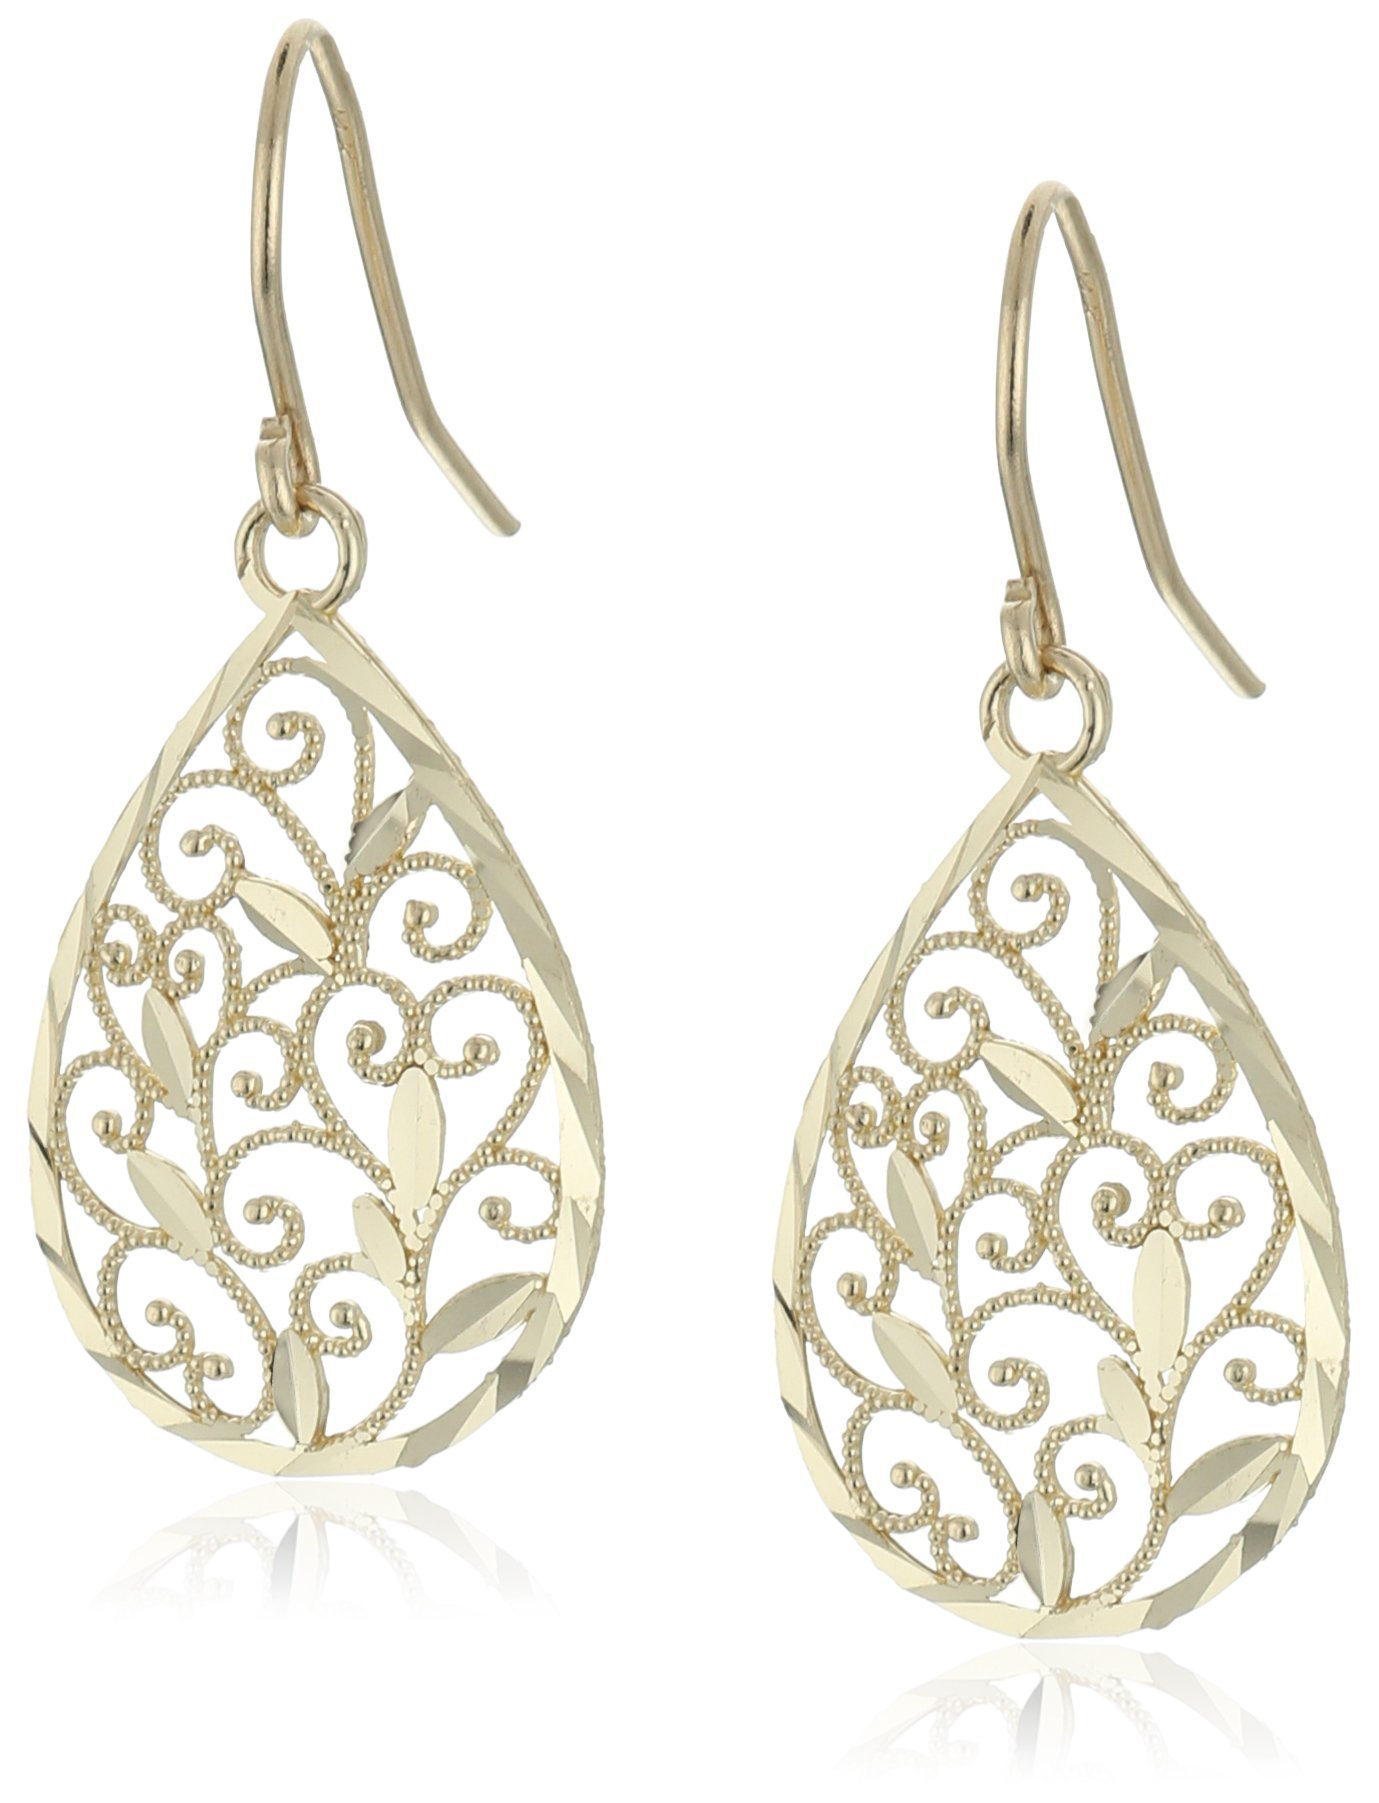 14k Yellow Gold Filigree Teardrop Earrings